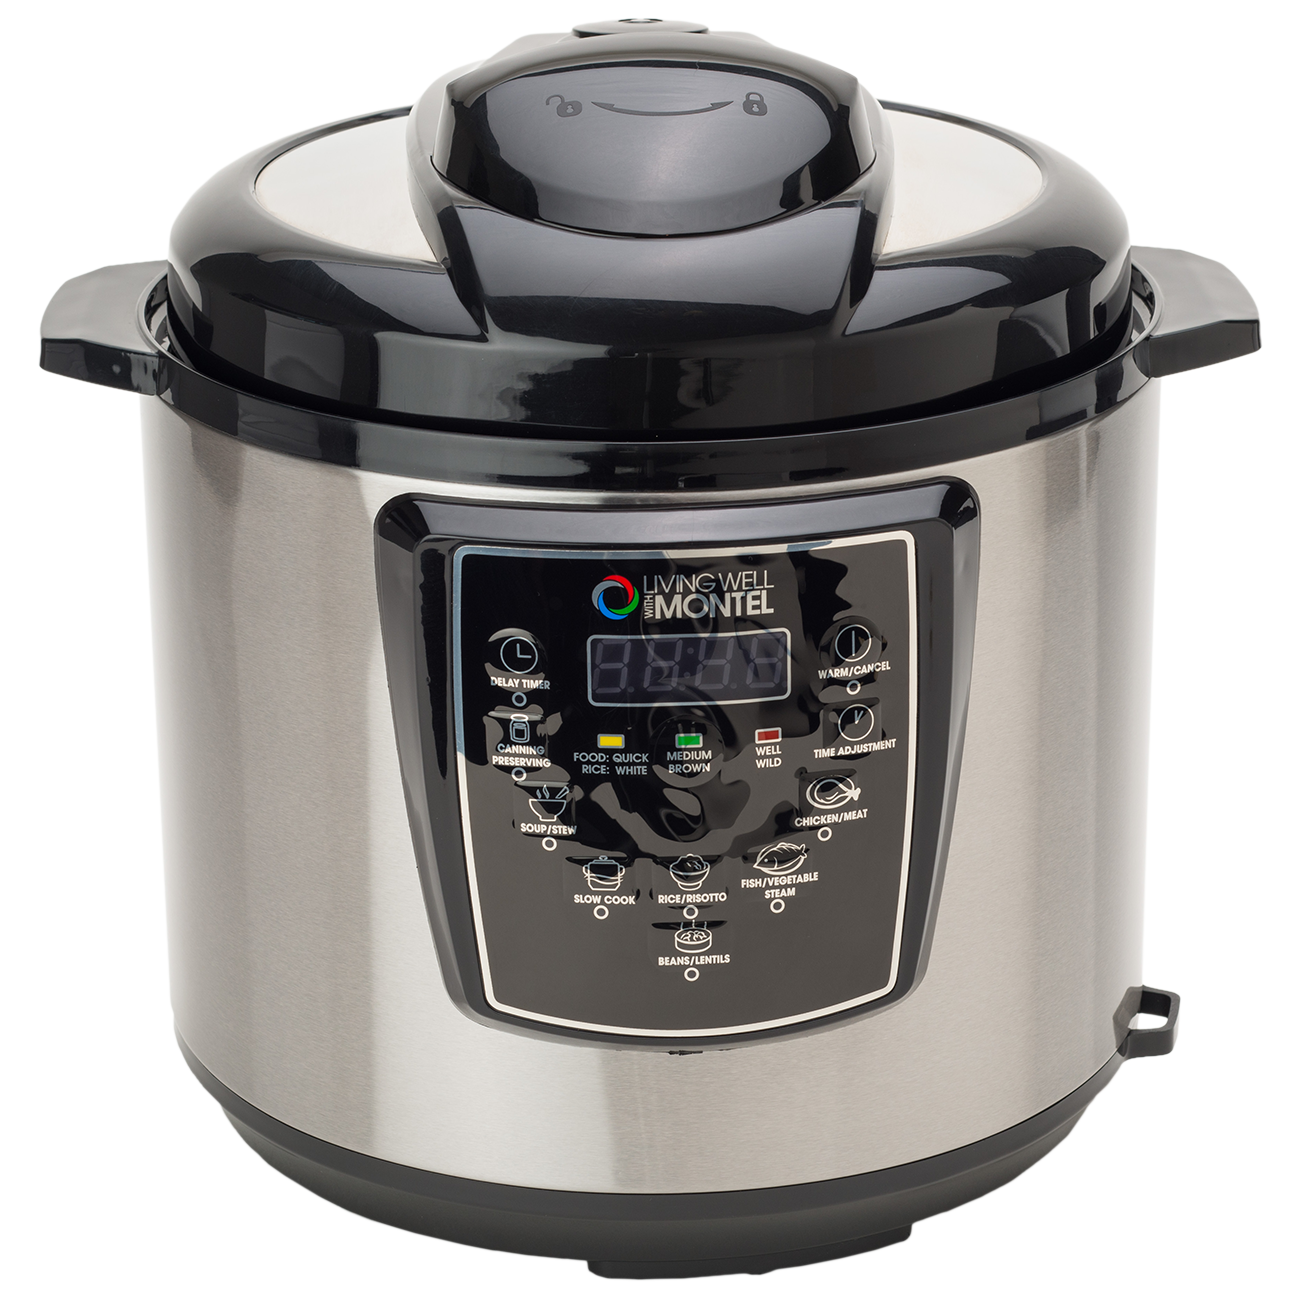 6 Quart Pressure Cooker - Living Well Products, LLC